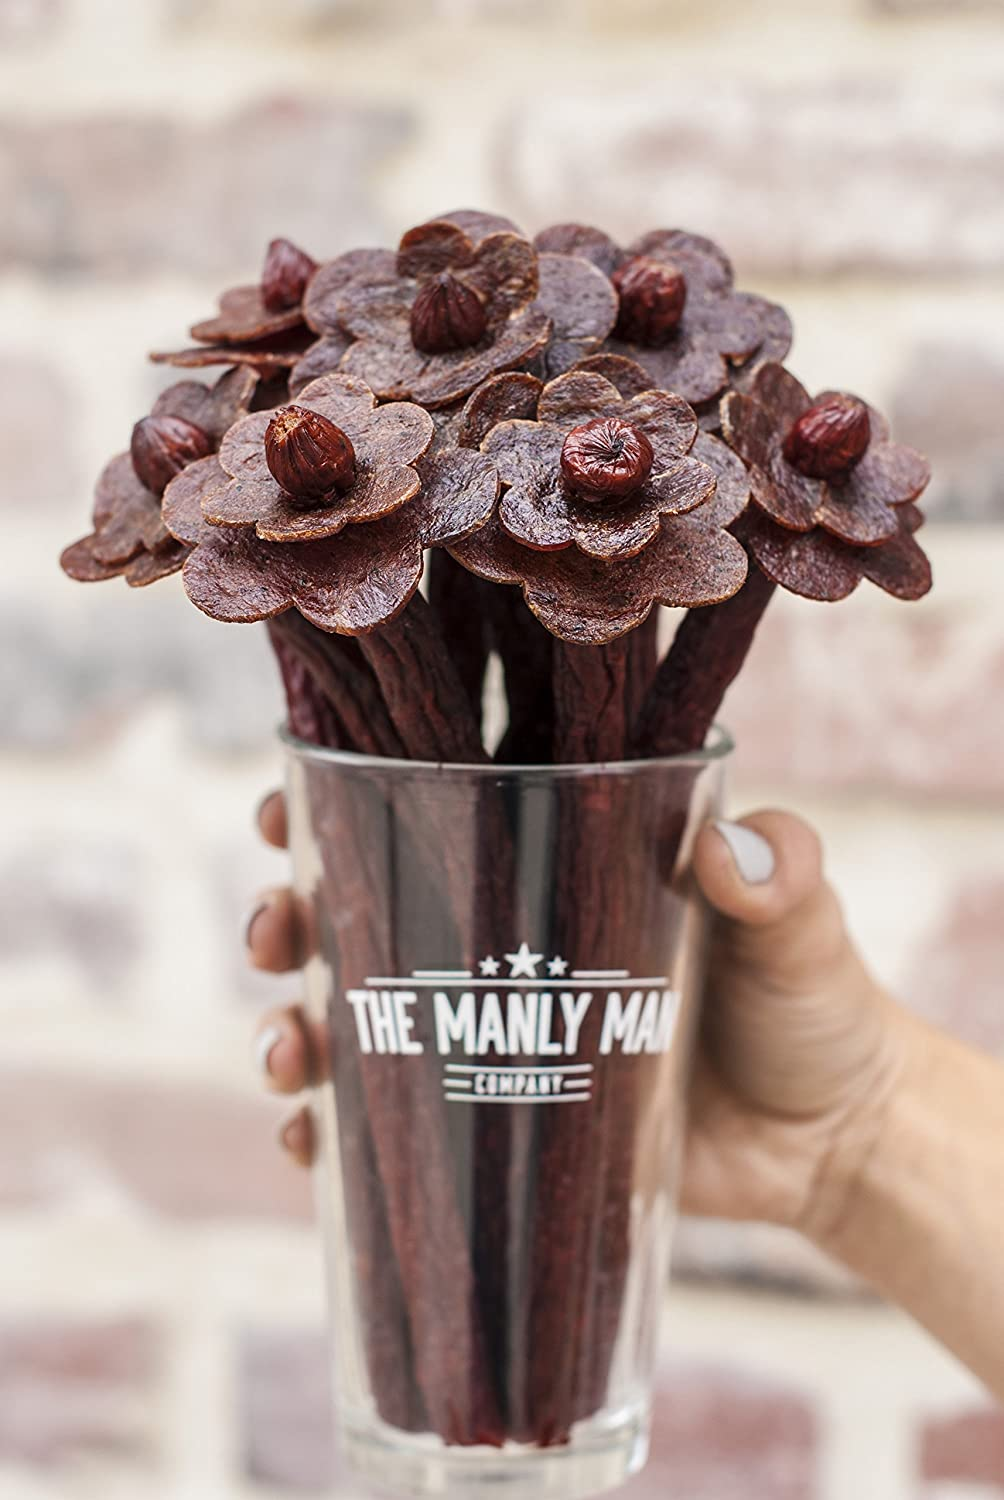 Enter and you could be the lucky reader who wins a Beef Jerky Flowers Manly Man Bouquet valued at $89 when this giveaway ends November 1st! #Broquet #Prize #Win